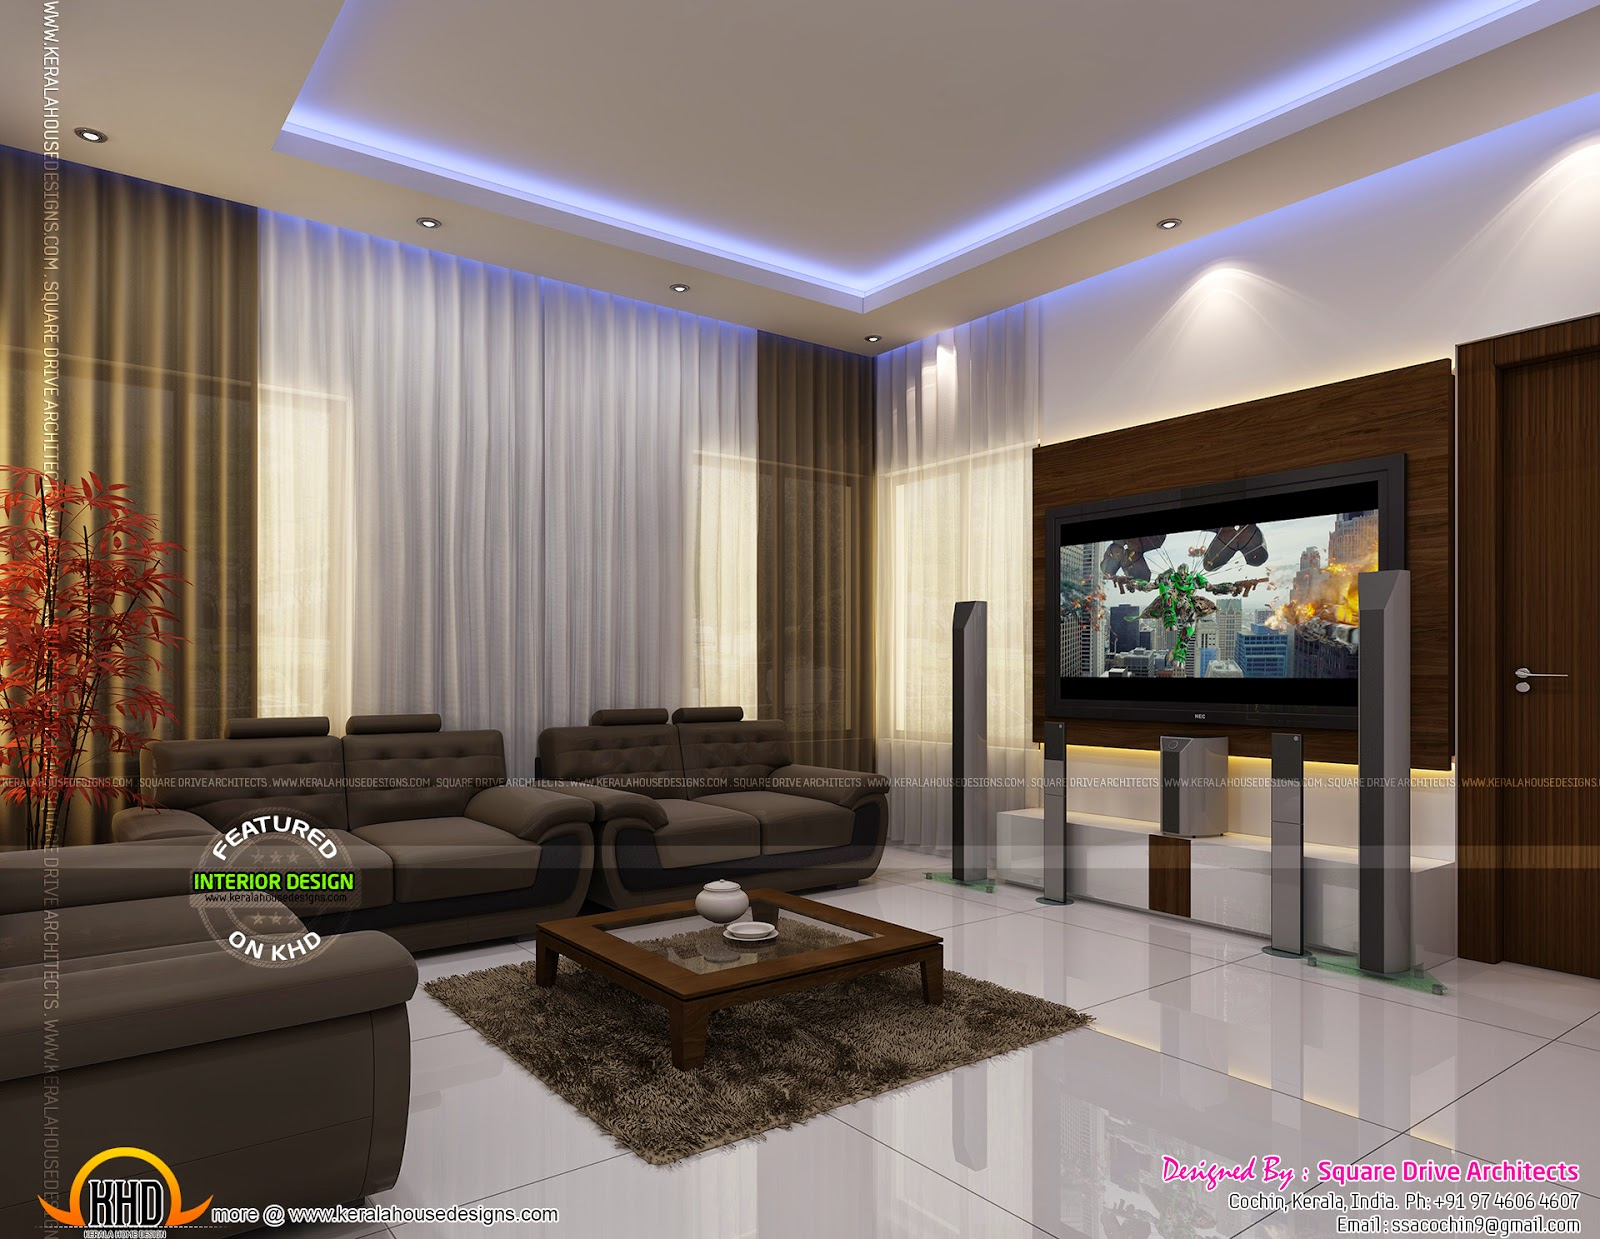 Living Room Designs Kerala Homes home interiors designs - kerala home design and floor plans